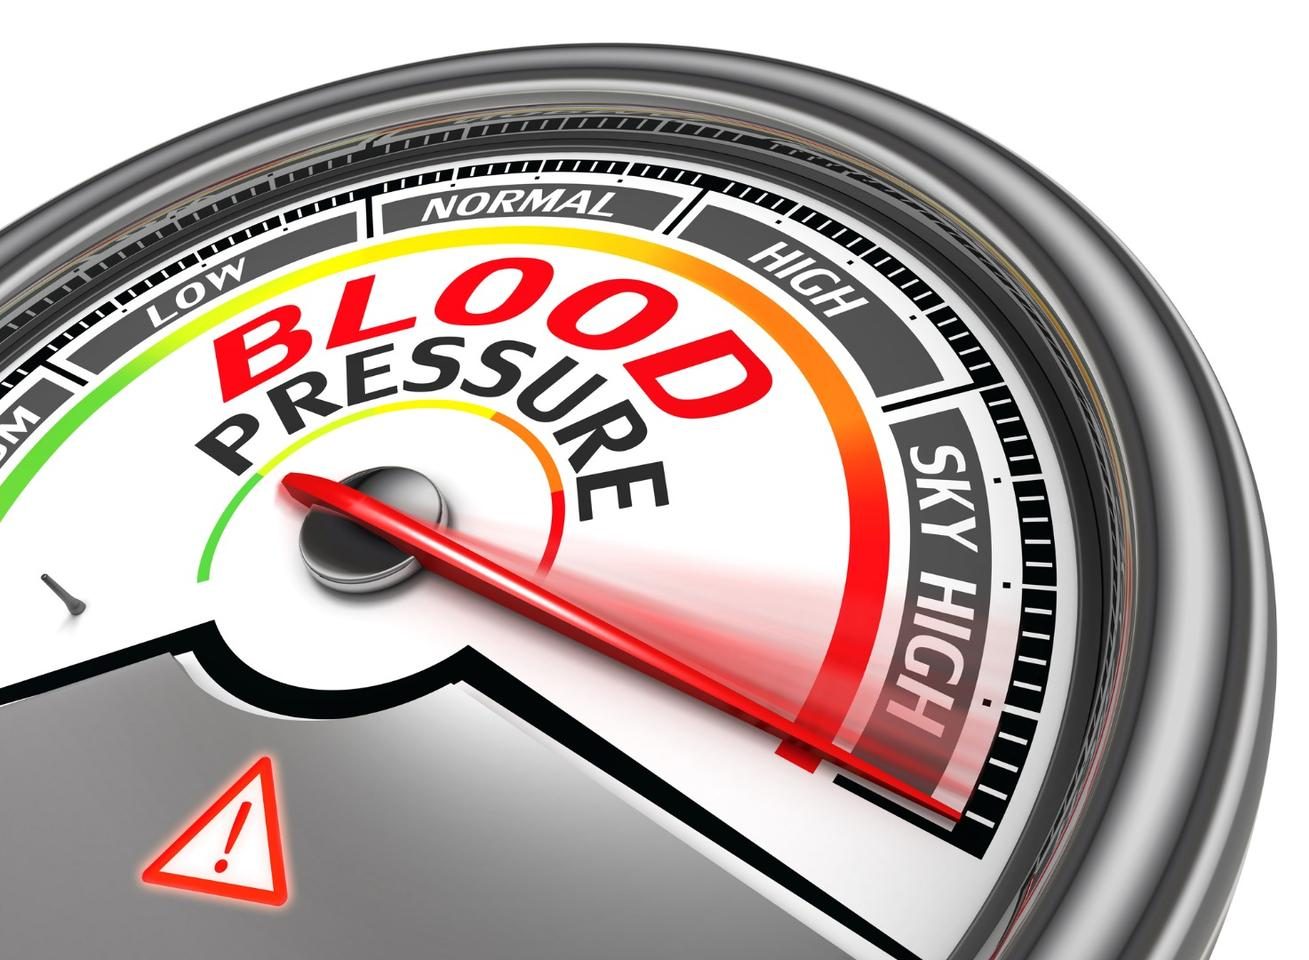 A procedure called renal denervation resulted in medication-free blood pressure control in over a third of trial patients